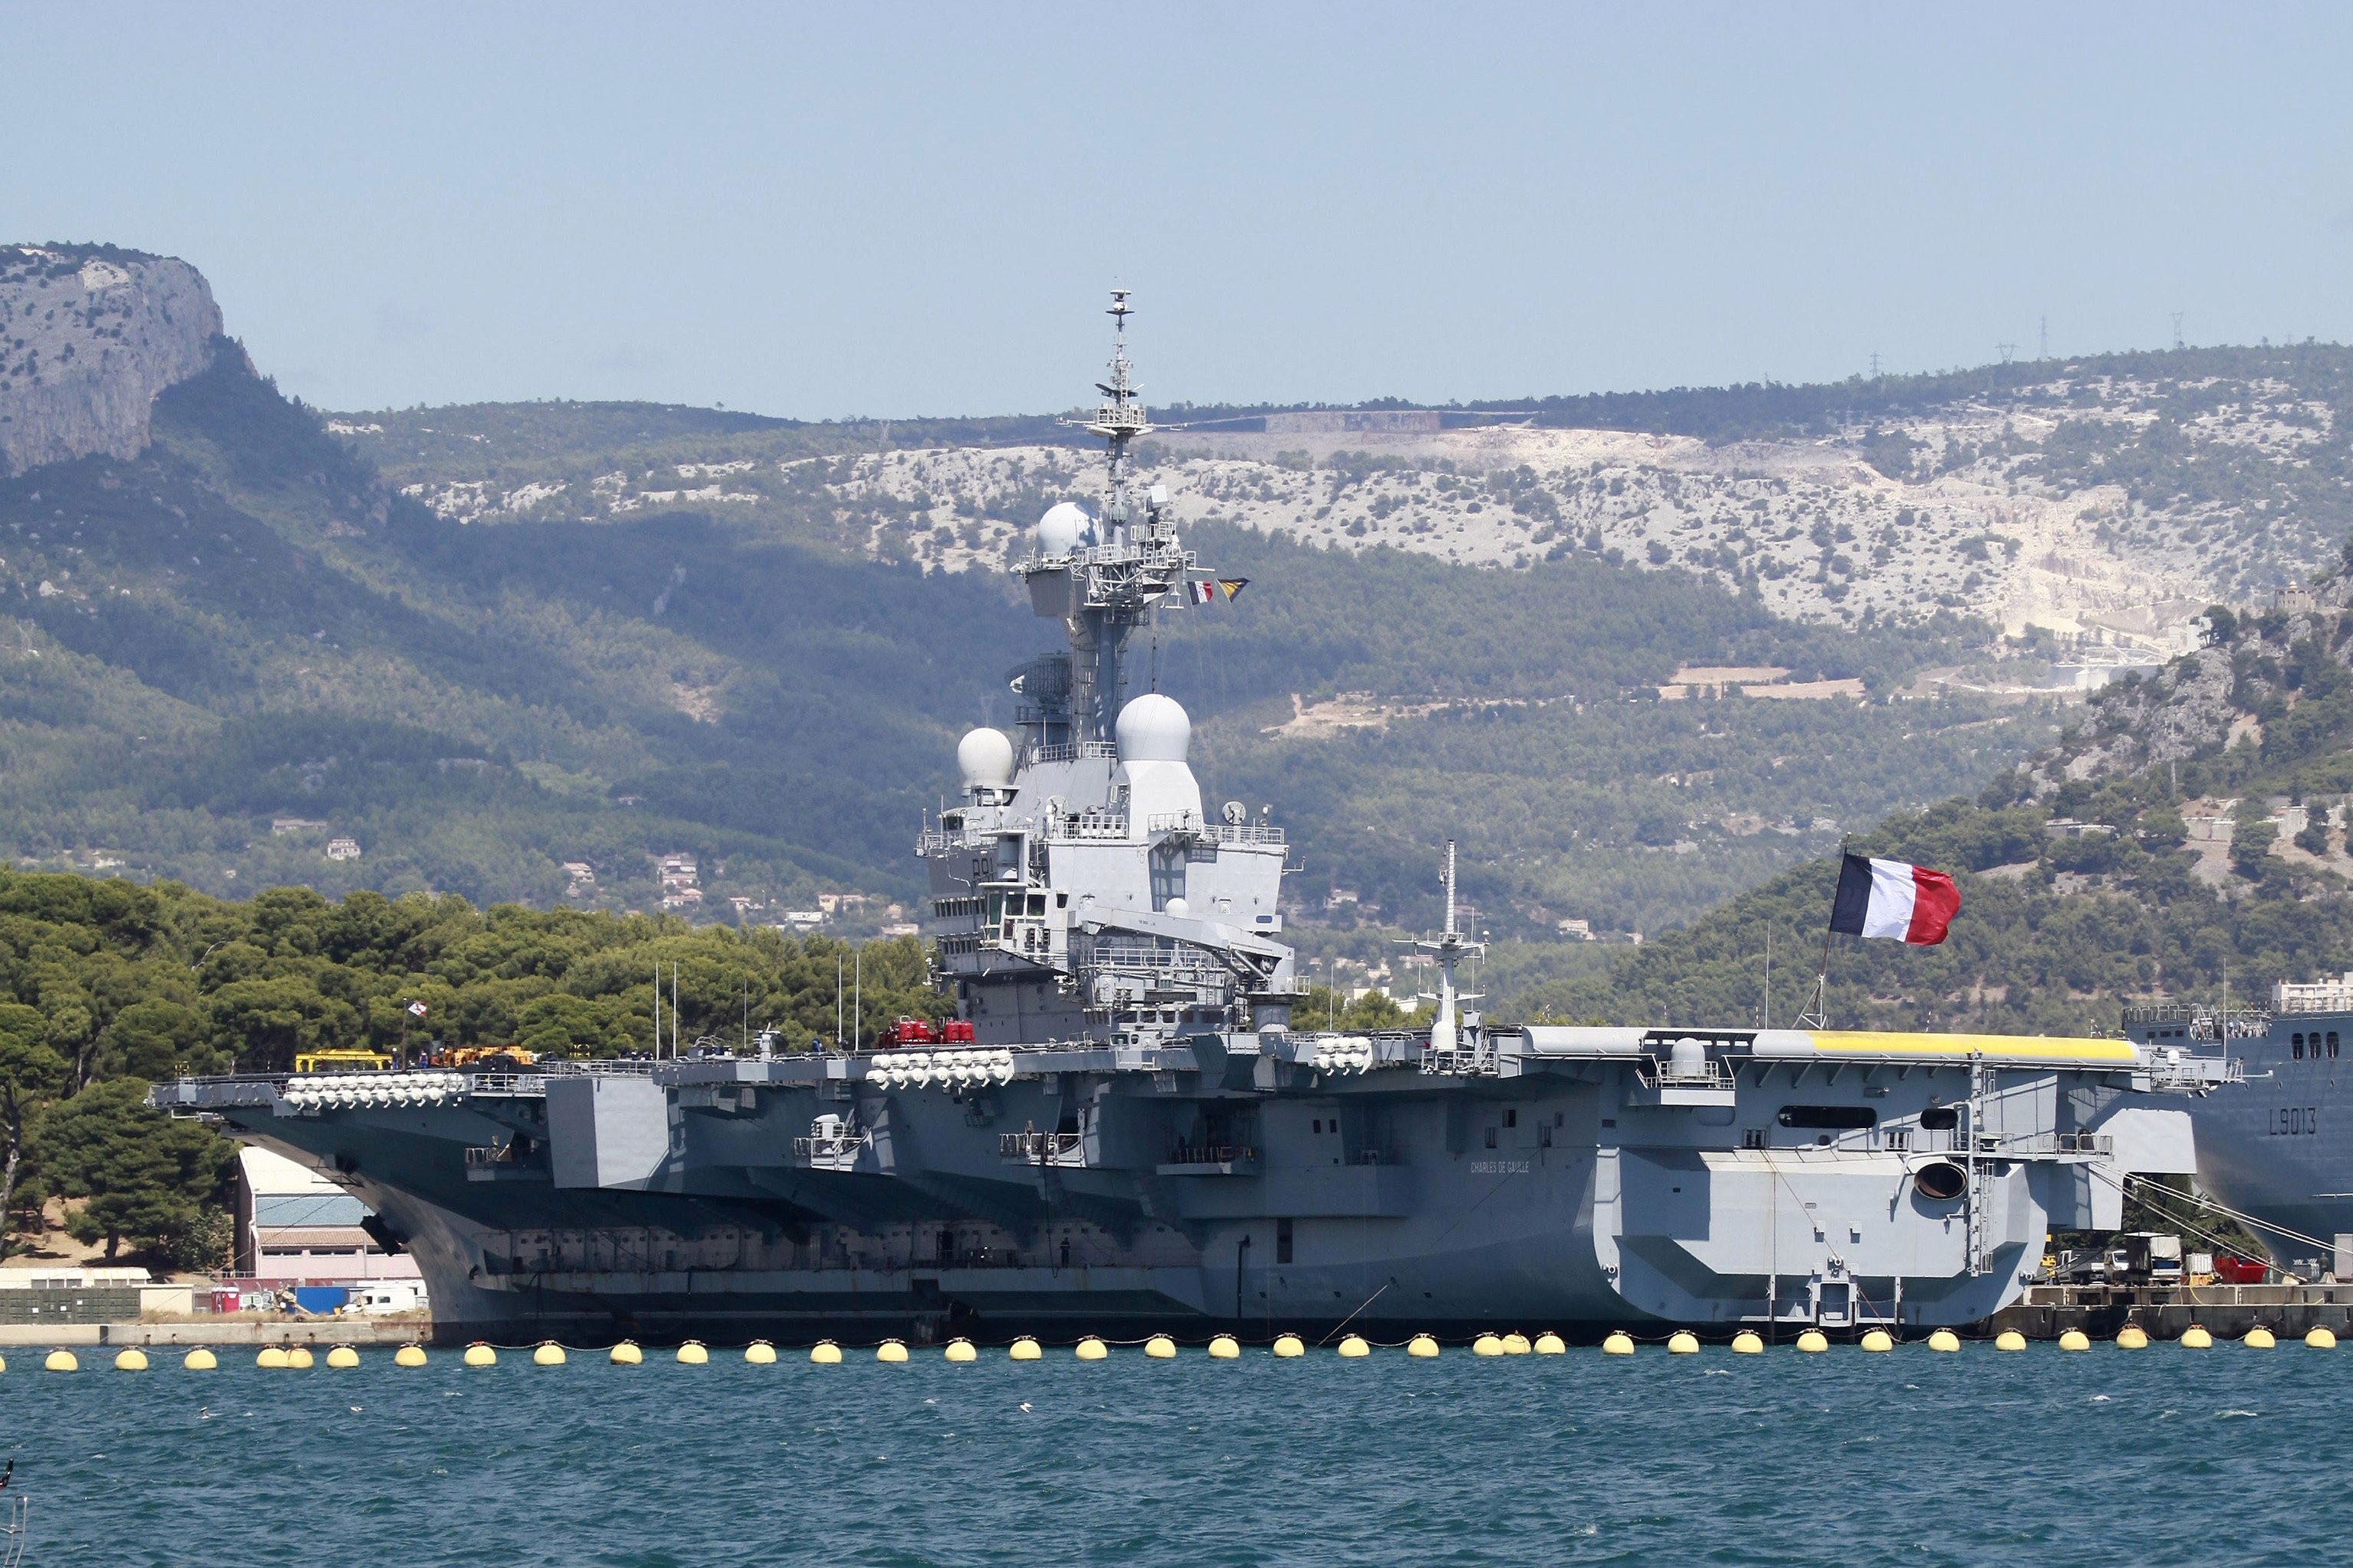 Le Meilleur Aircraft Carrier Charles De Gaulle French Navy Wallpapers Ce Mois Ci